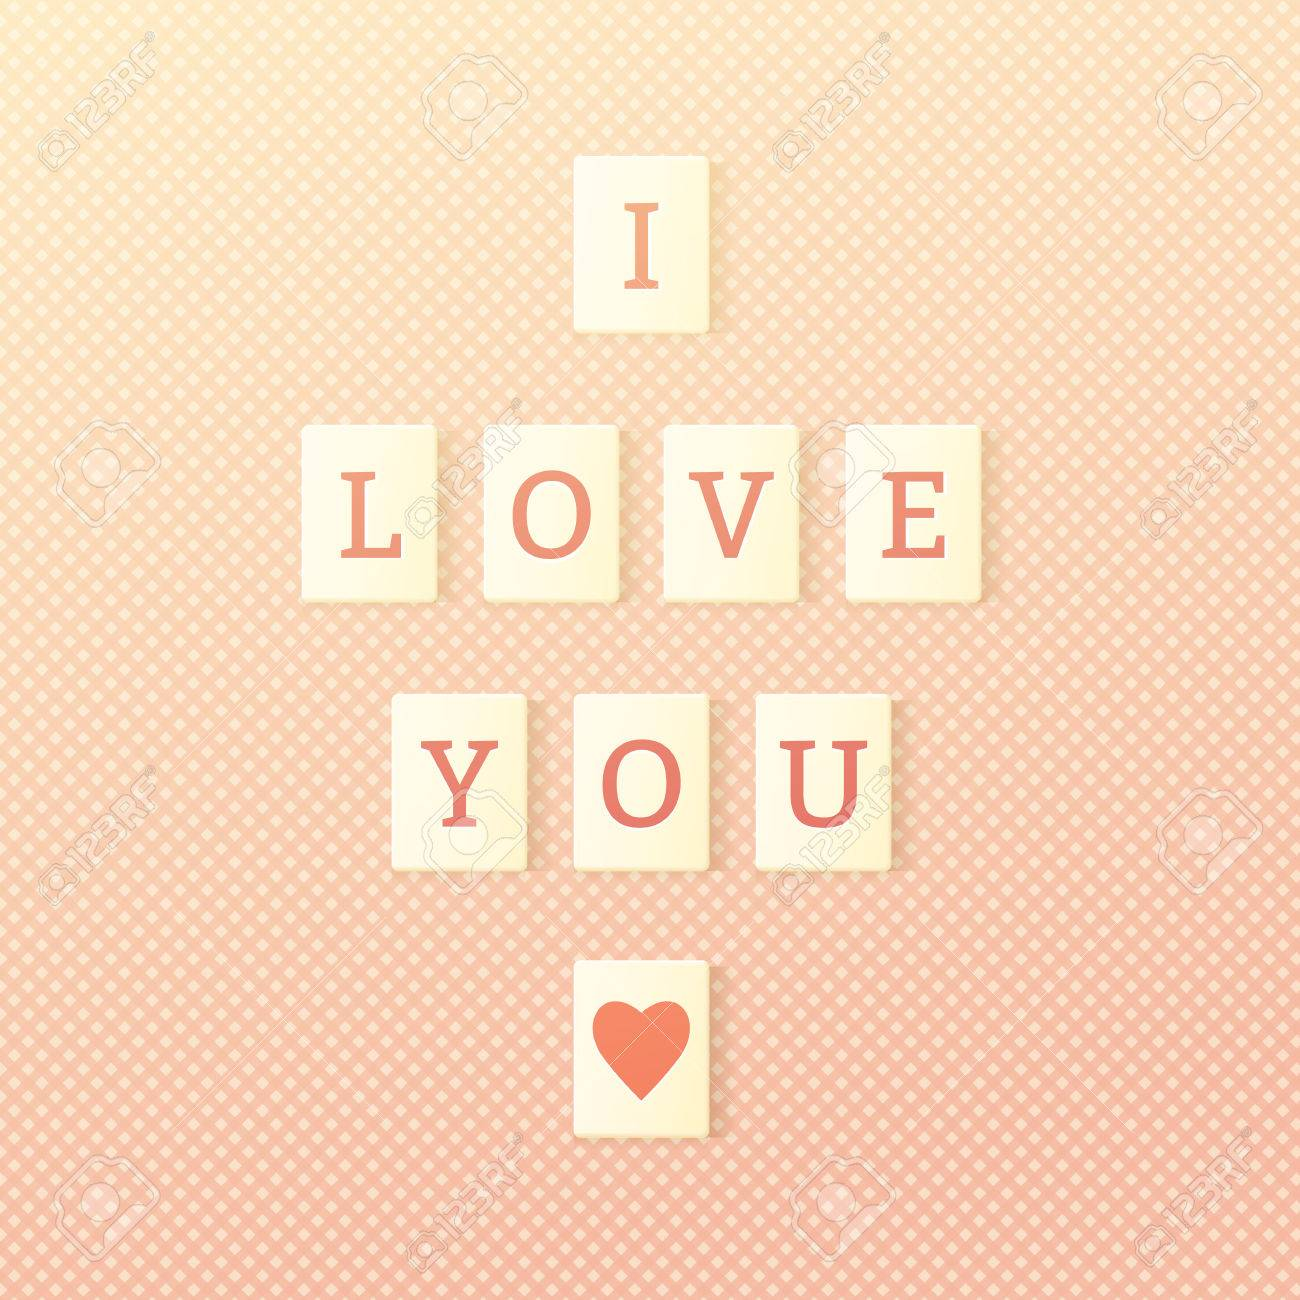 scrabble tiles spelling i love you valentines day greetings stock vector